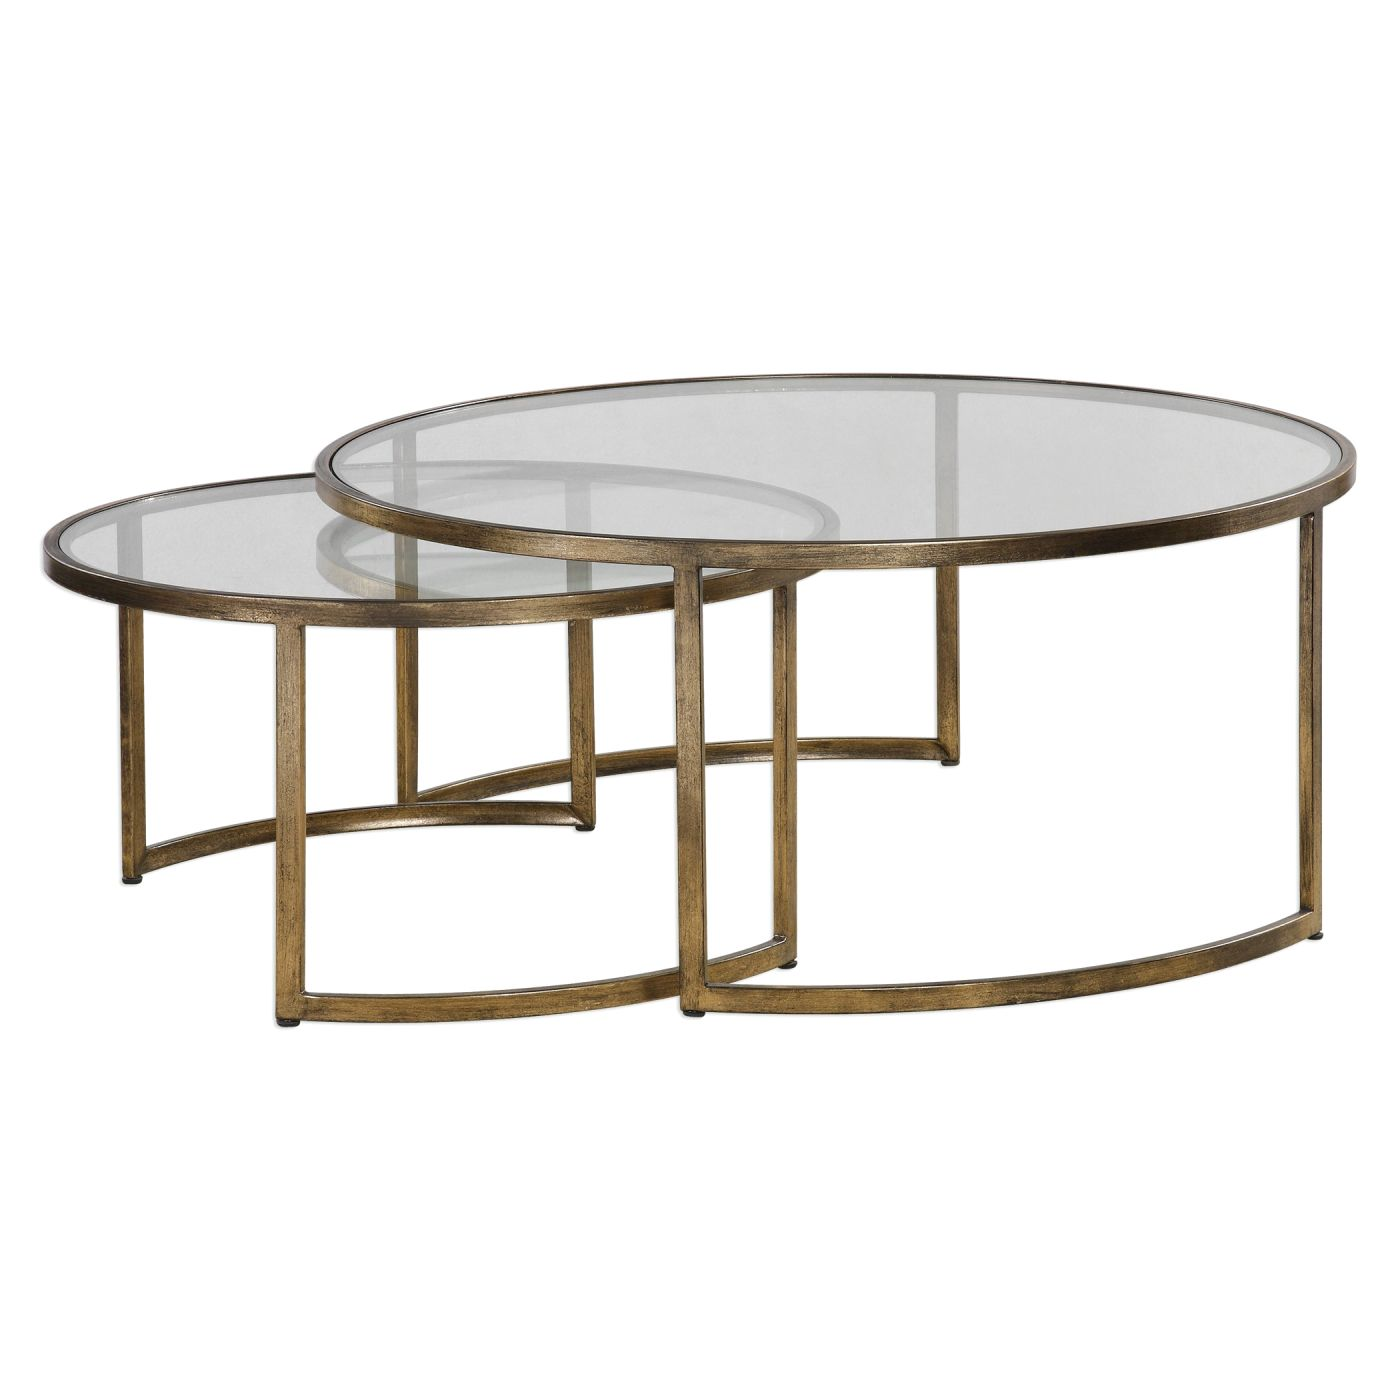 Uttermost Rhea Nested Coffee Tables S 2 UTT ly $822 80 at